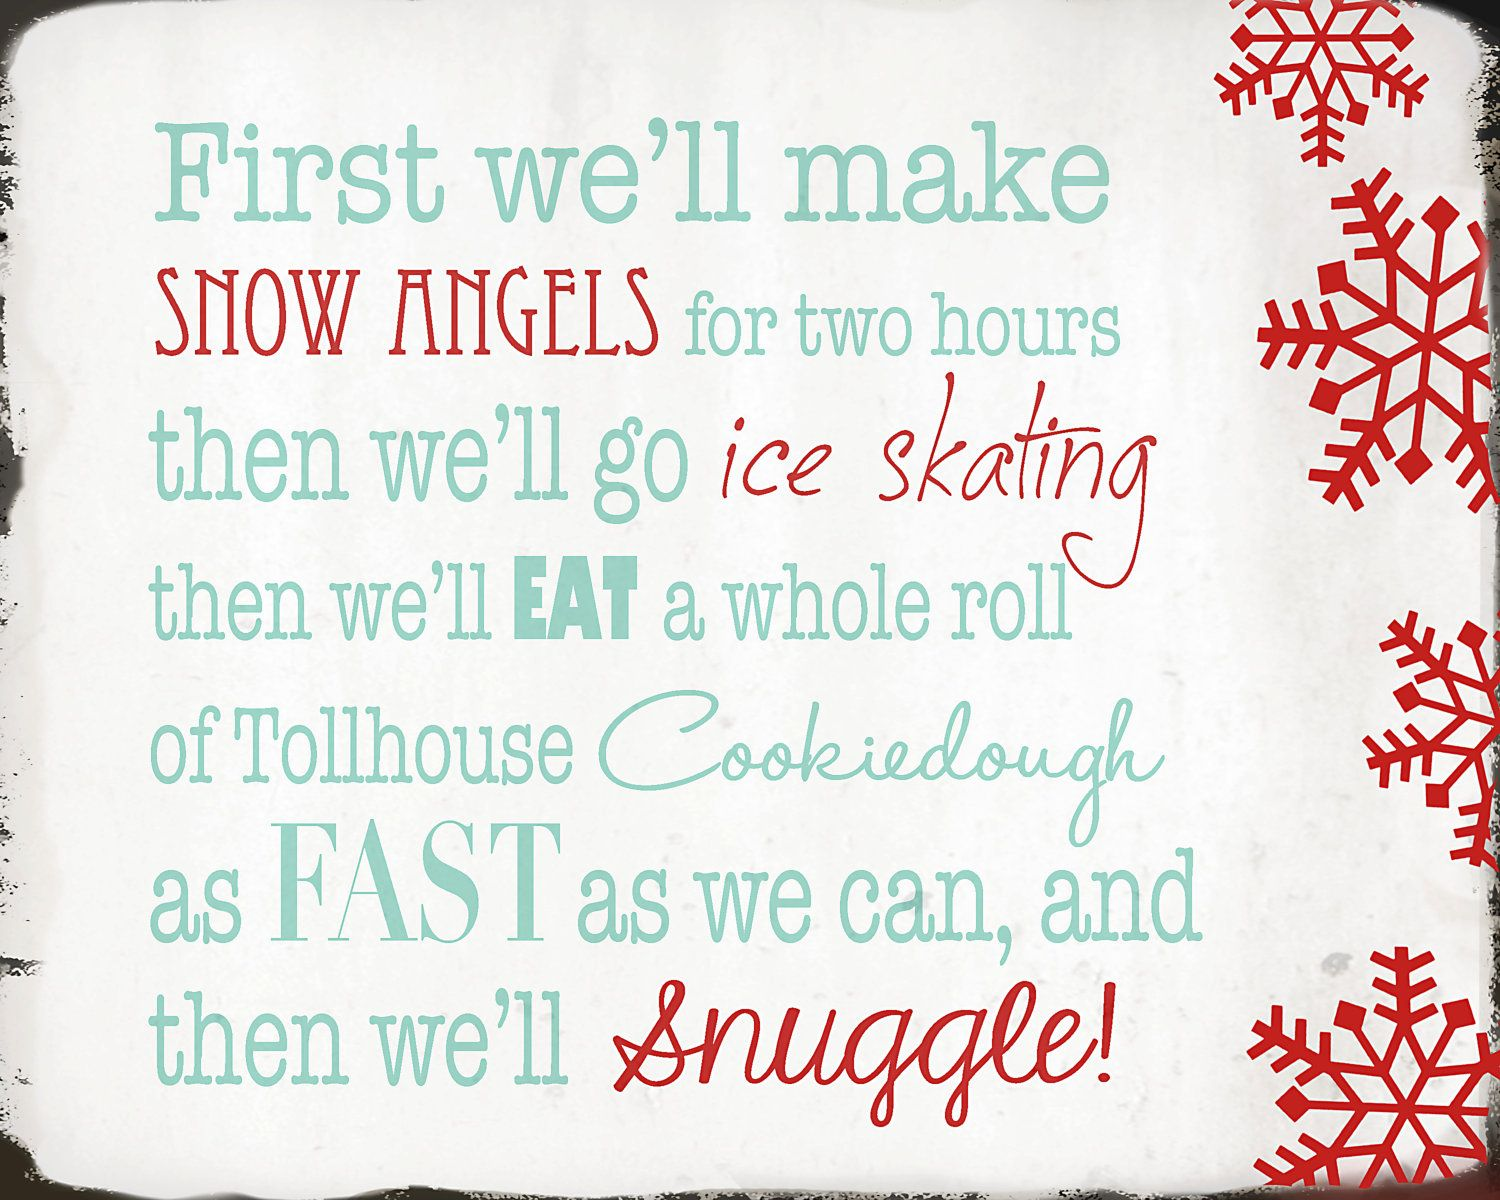 Elf Quotes Elf Quote  First We Will Make Snow Angels For Two Hours.then We